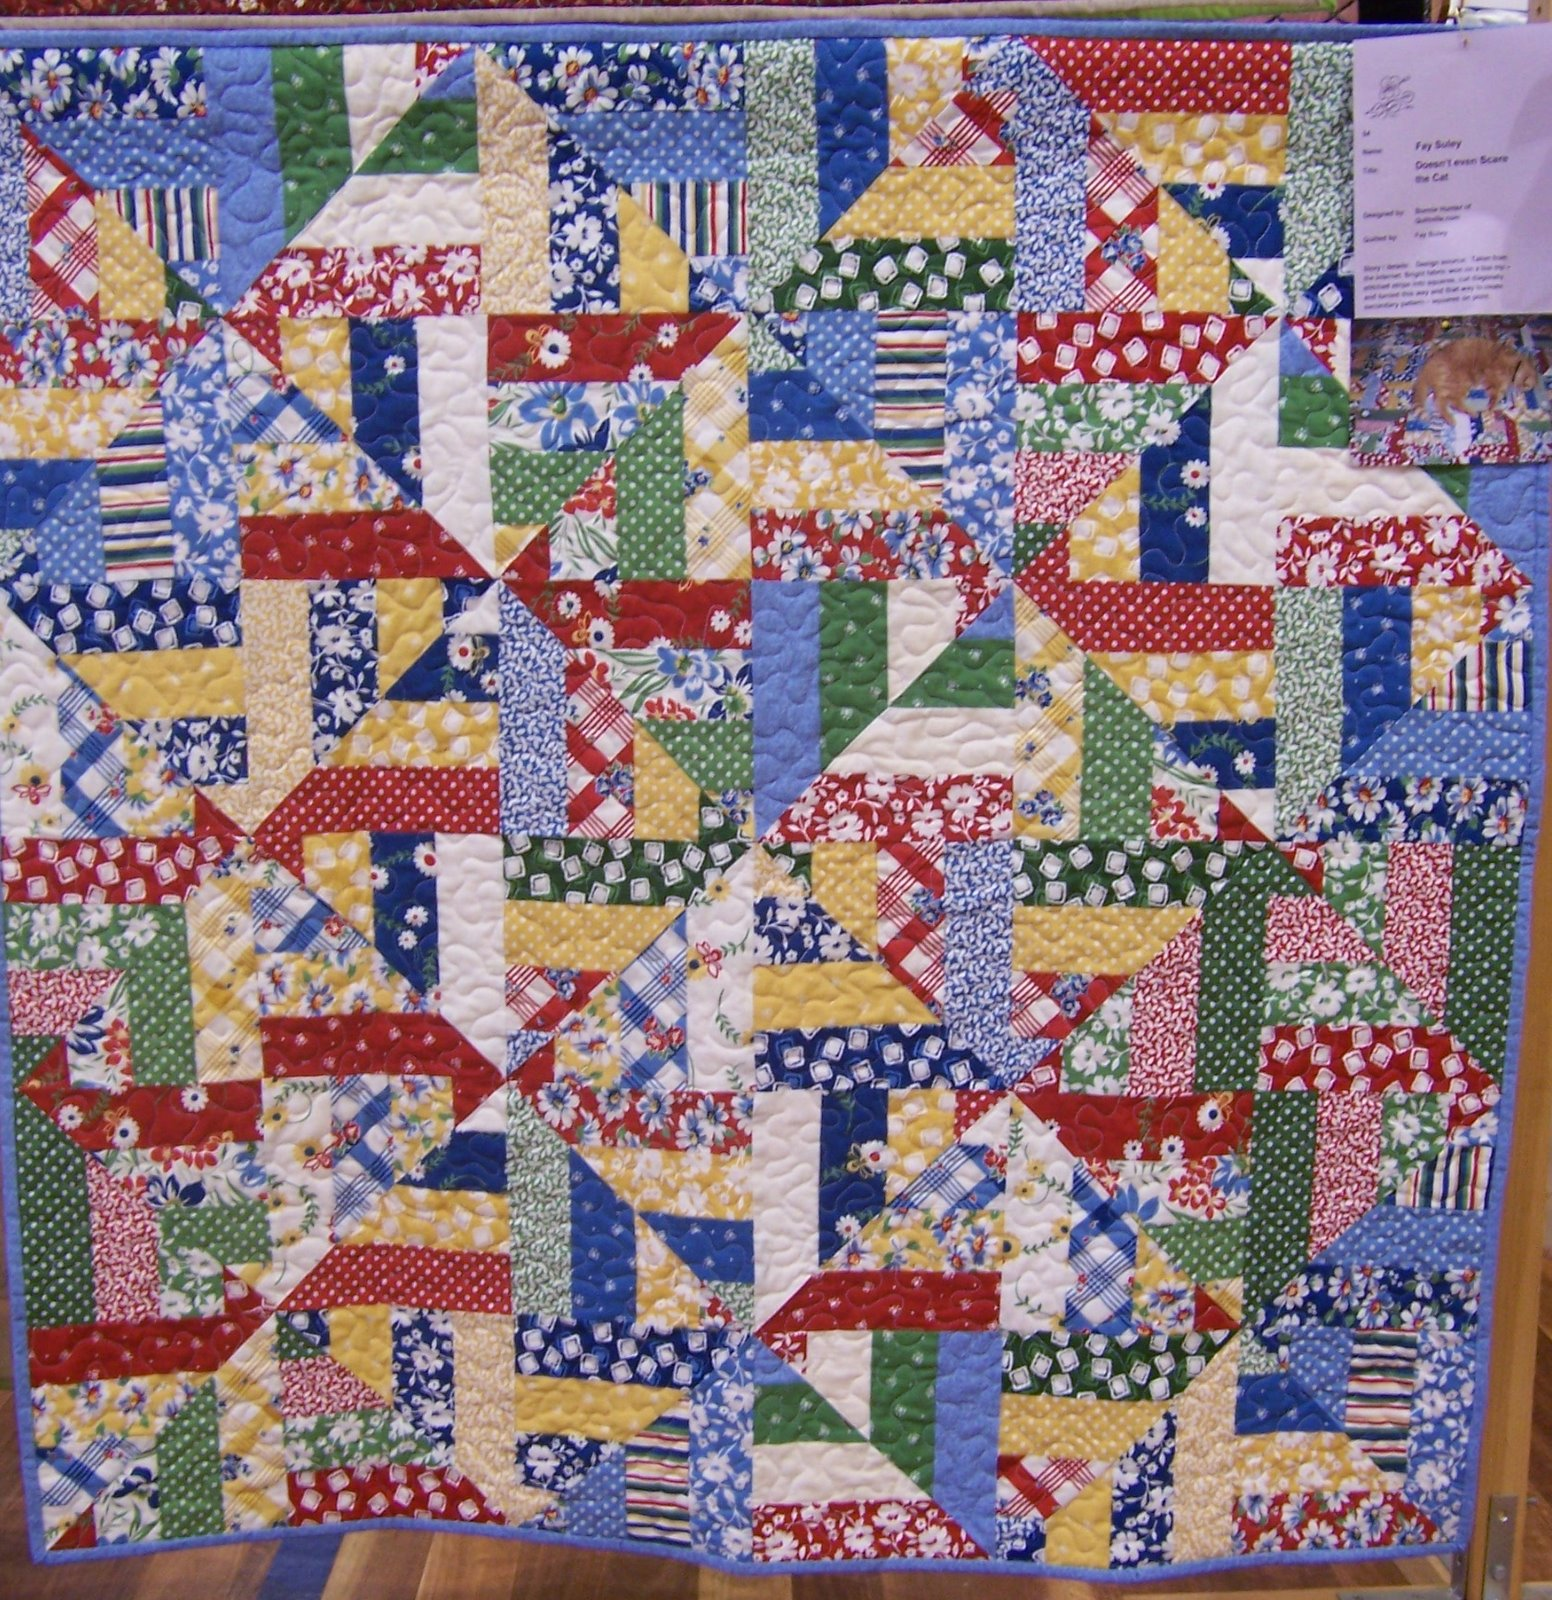 Toowoomba Quilters Club Inc Exhibition 2010 Quilts On Display 3